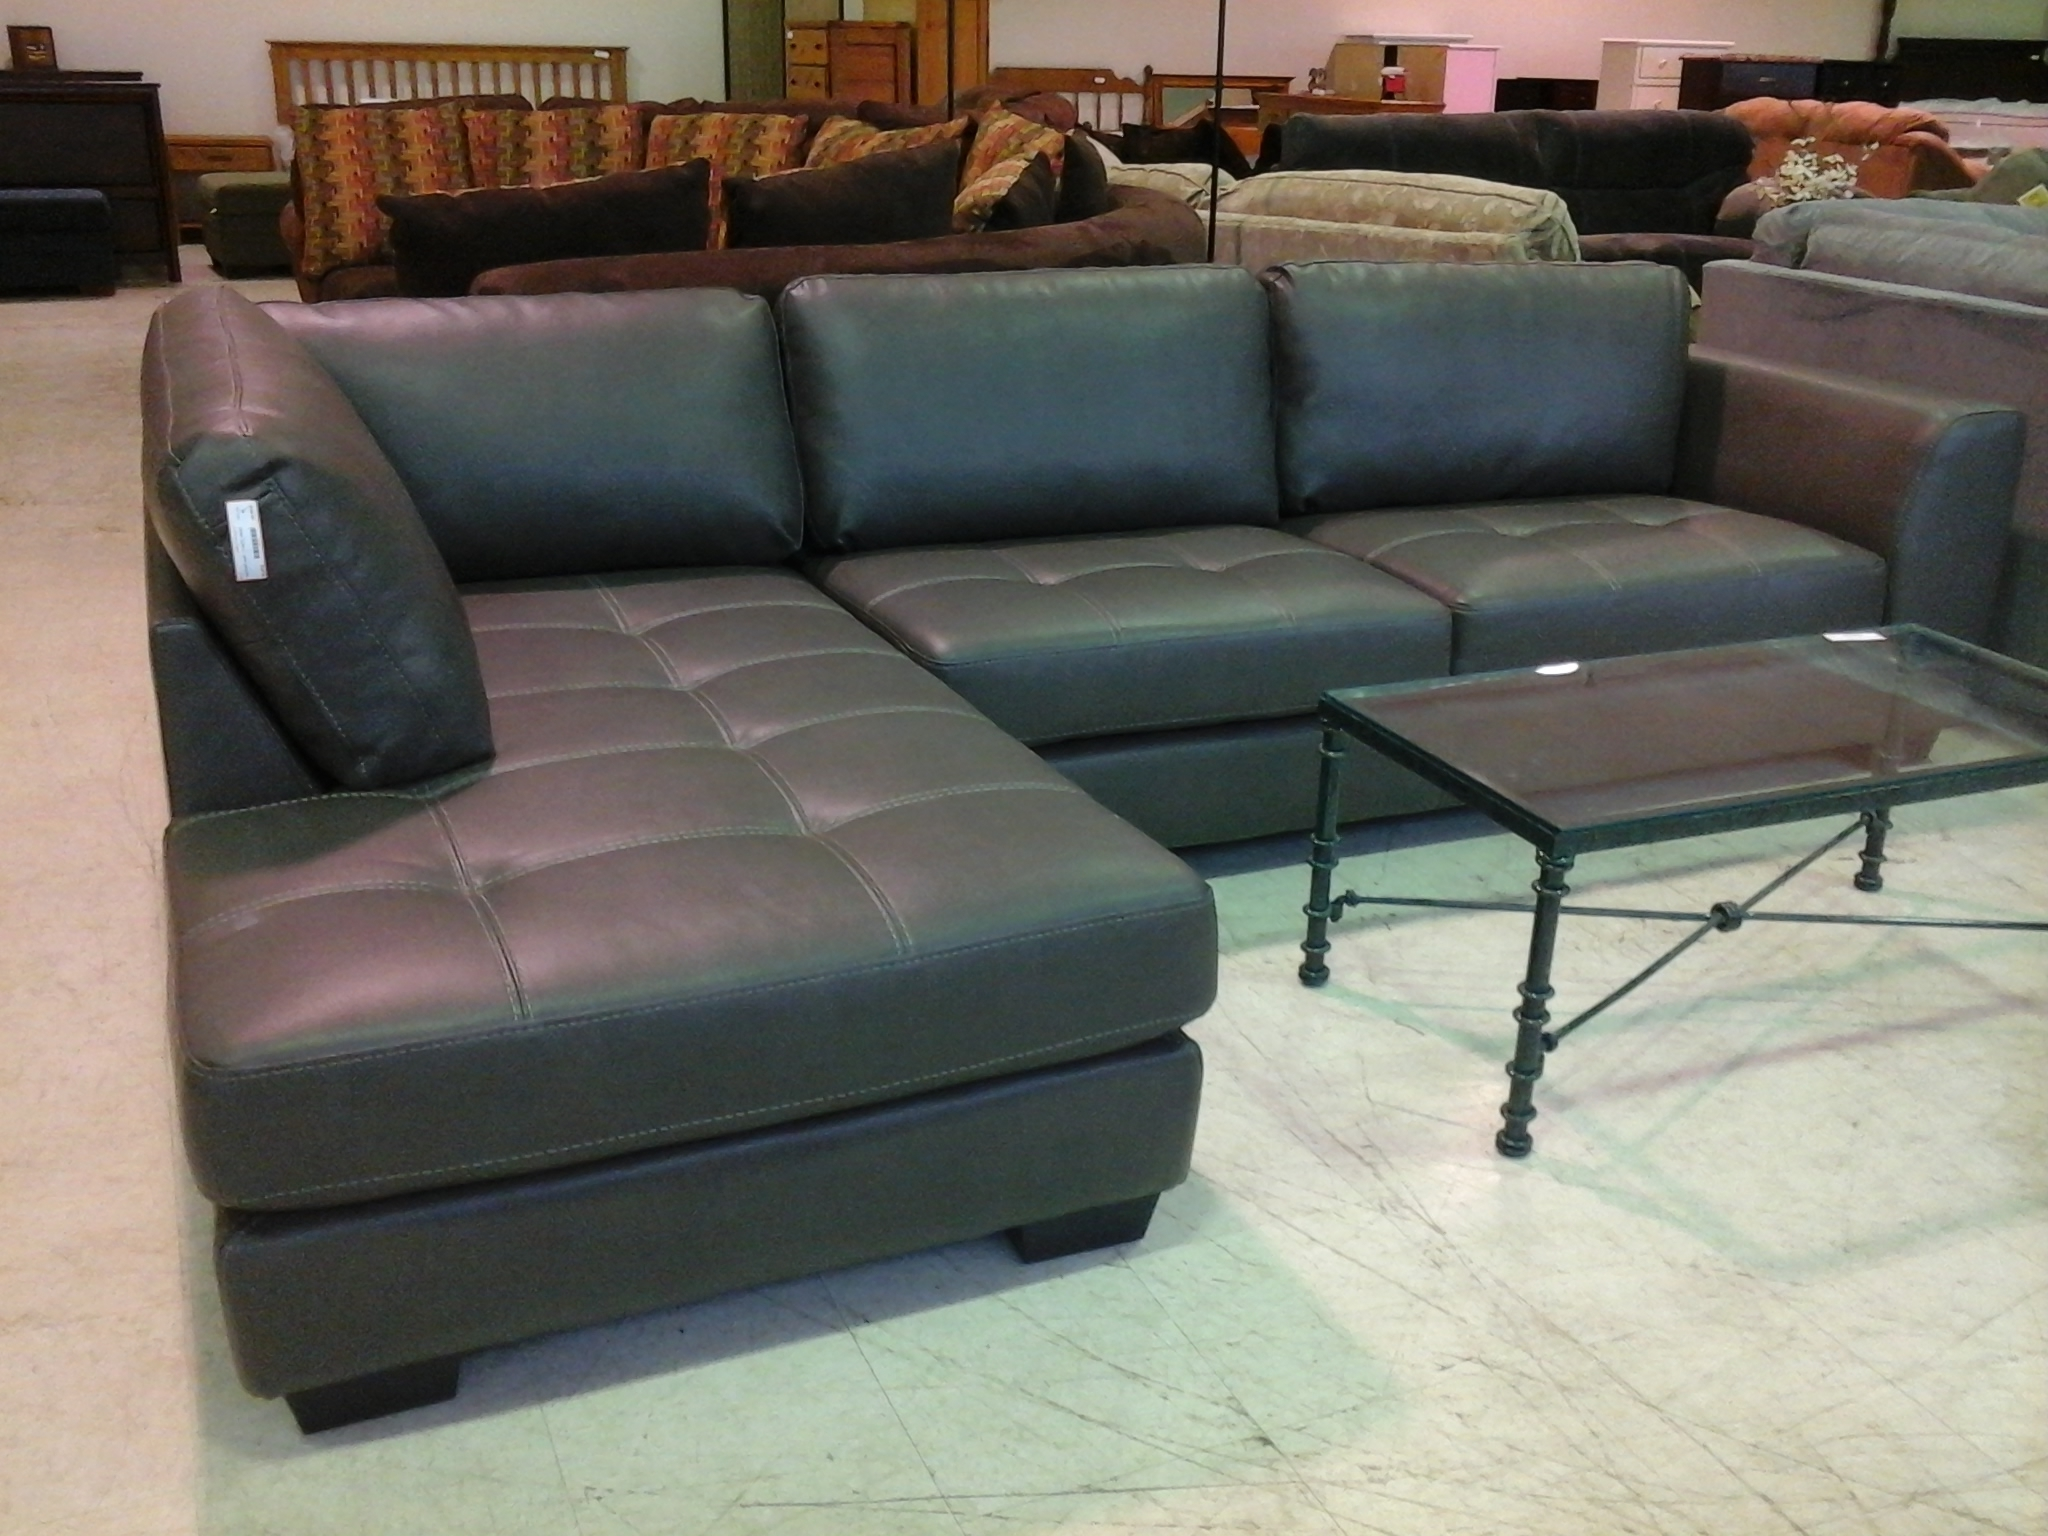 Most Recently Released Charcoal Sectionals With Chaise For Living Room Greyectionalofa With Chaise Reclining And Metropolitan (View 13 of 15)